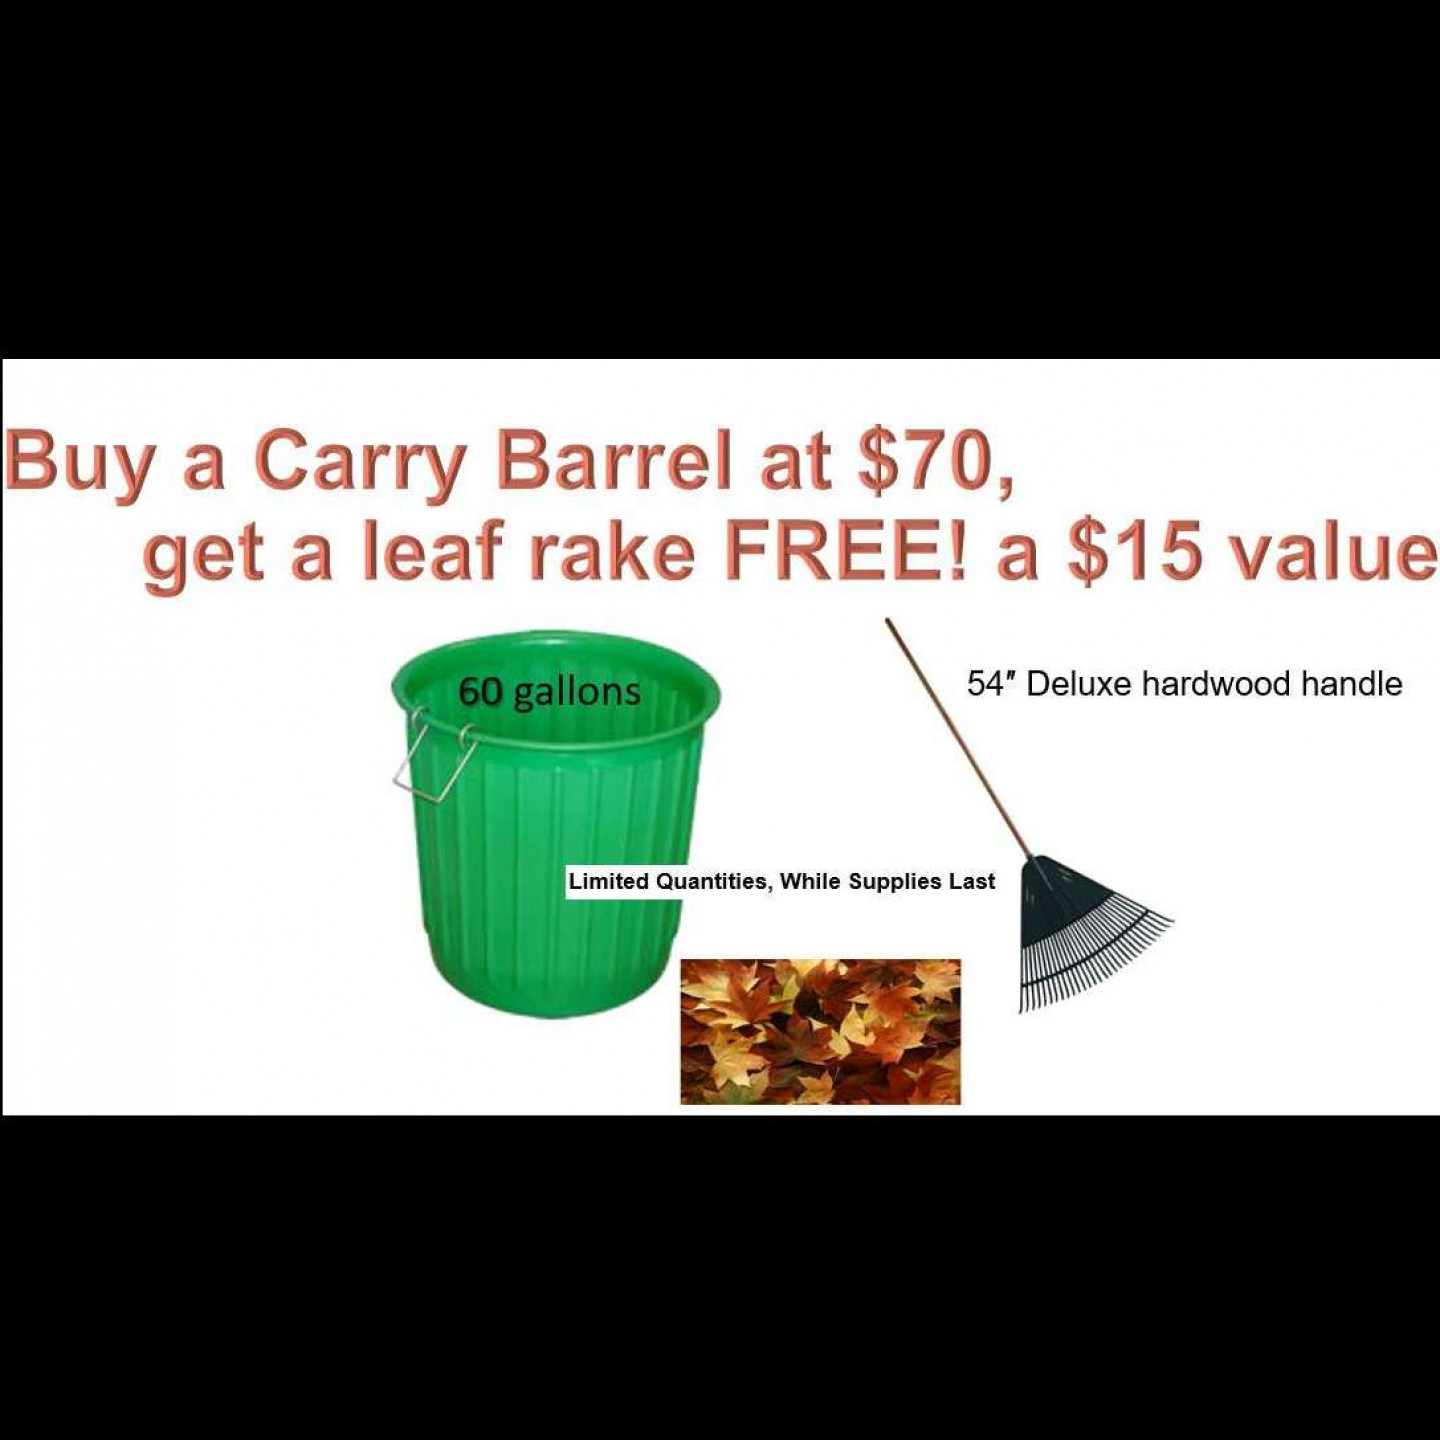 Buy a Carry Barrel at $70, Get a Leaf Rake FREE! a $15 value